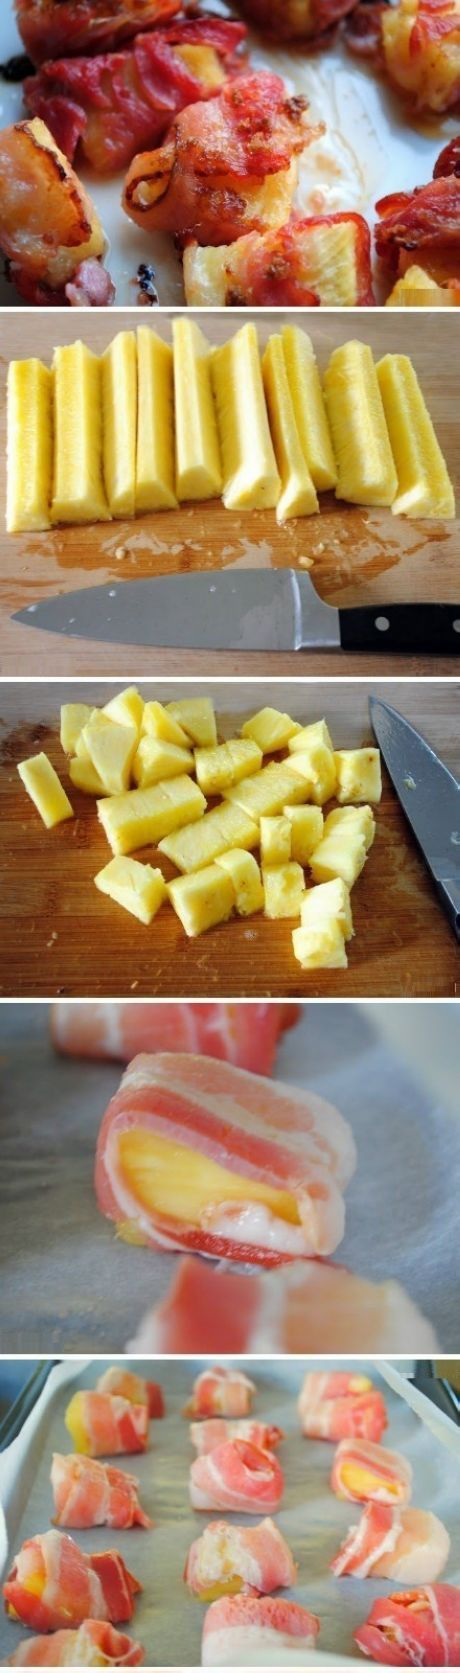 Oven Baked Pineapple Bacon!!  Oh Boy This is Yummy!!  A Burst of Flavour in Your Mouth!!